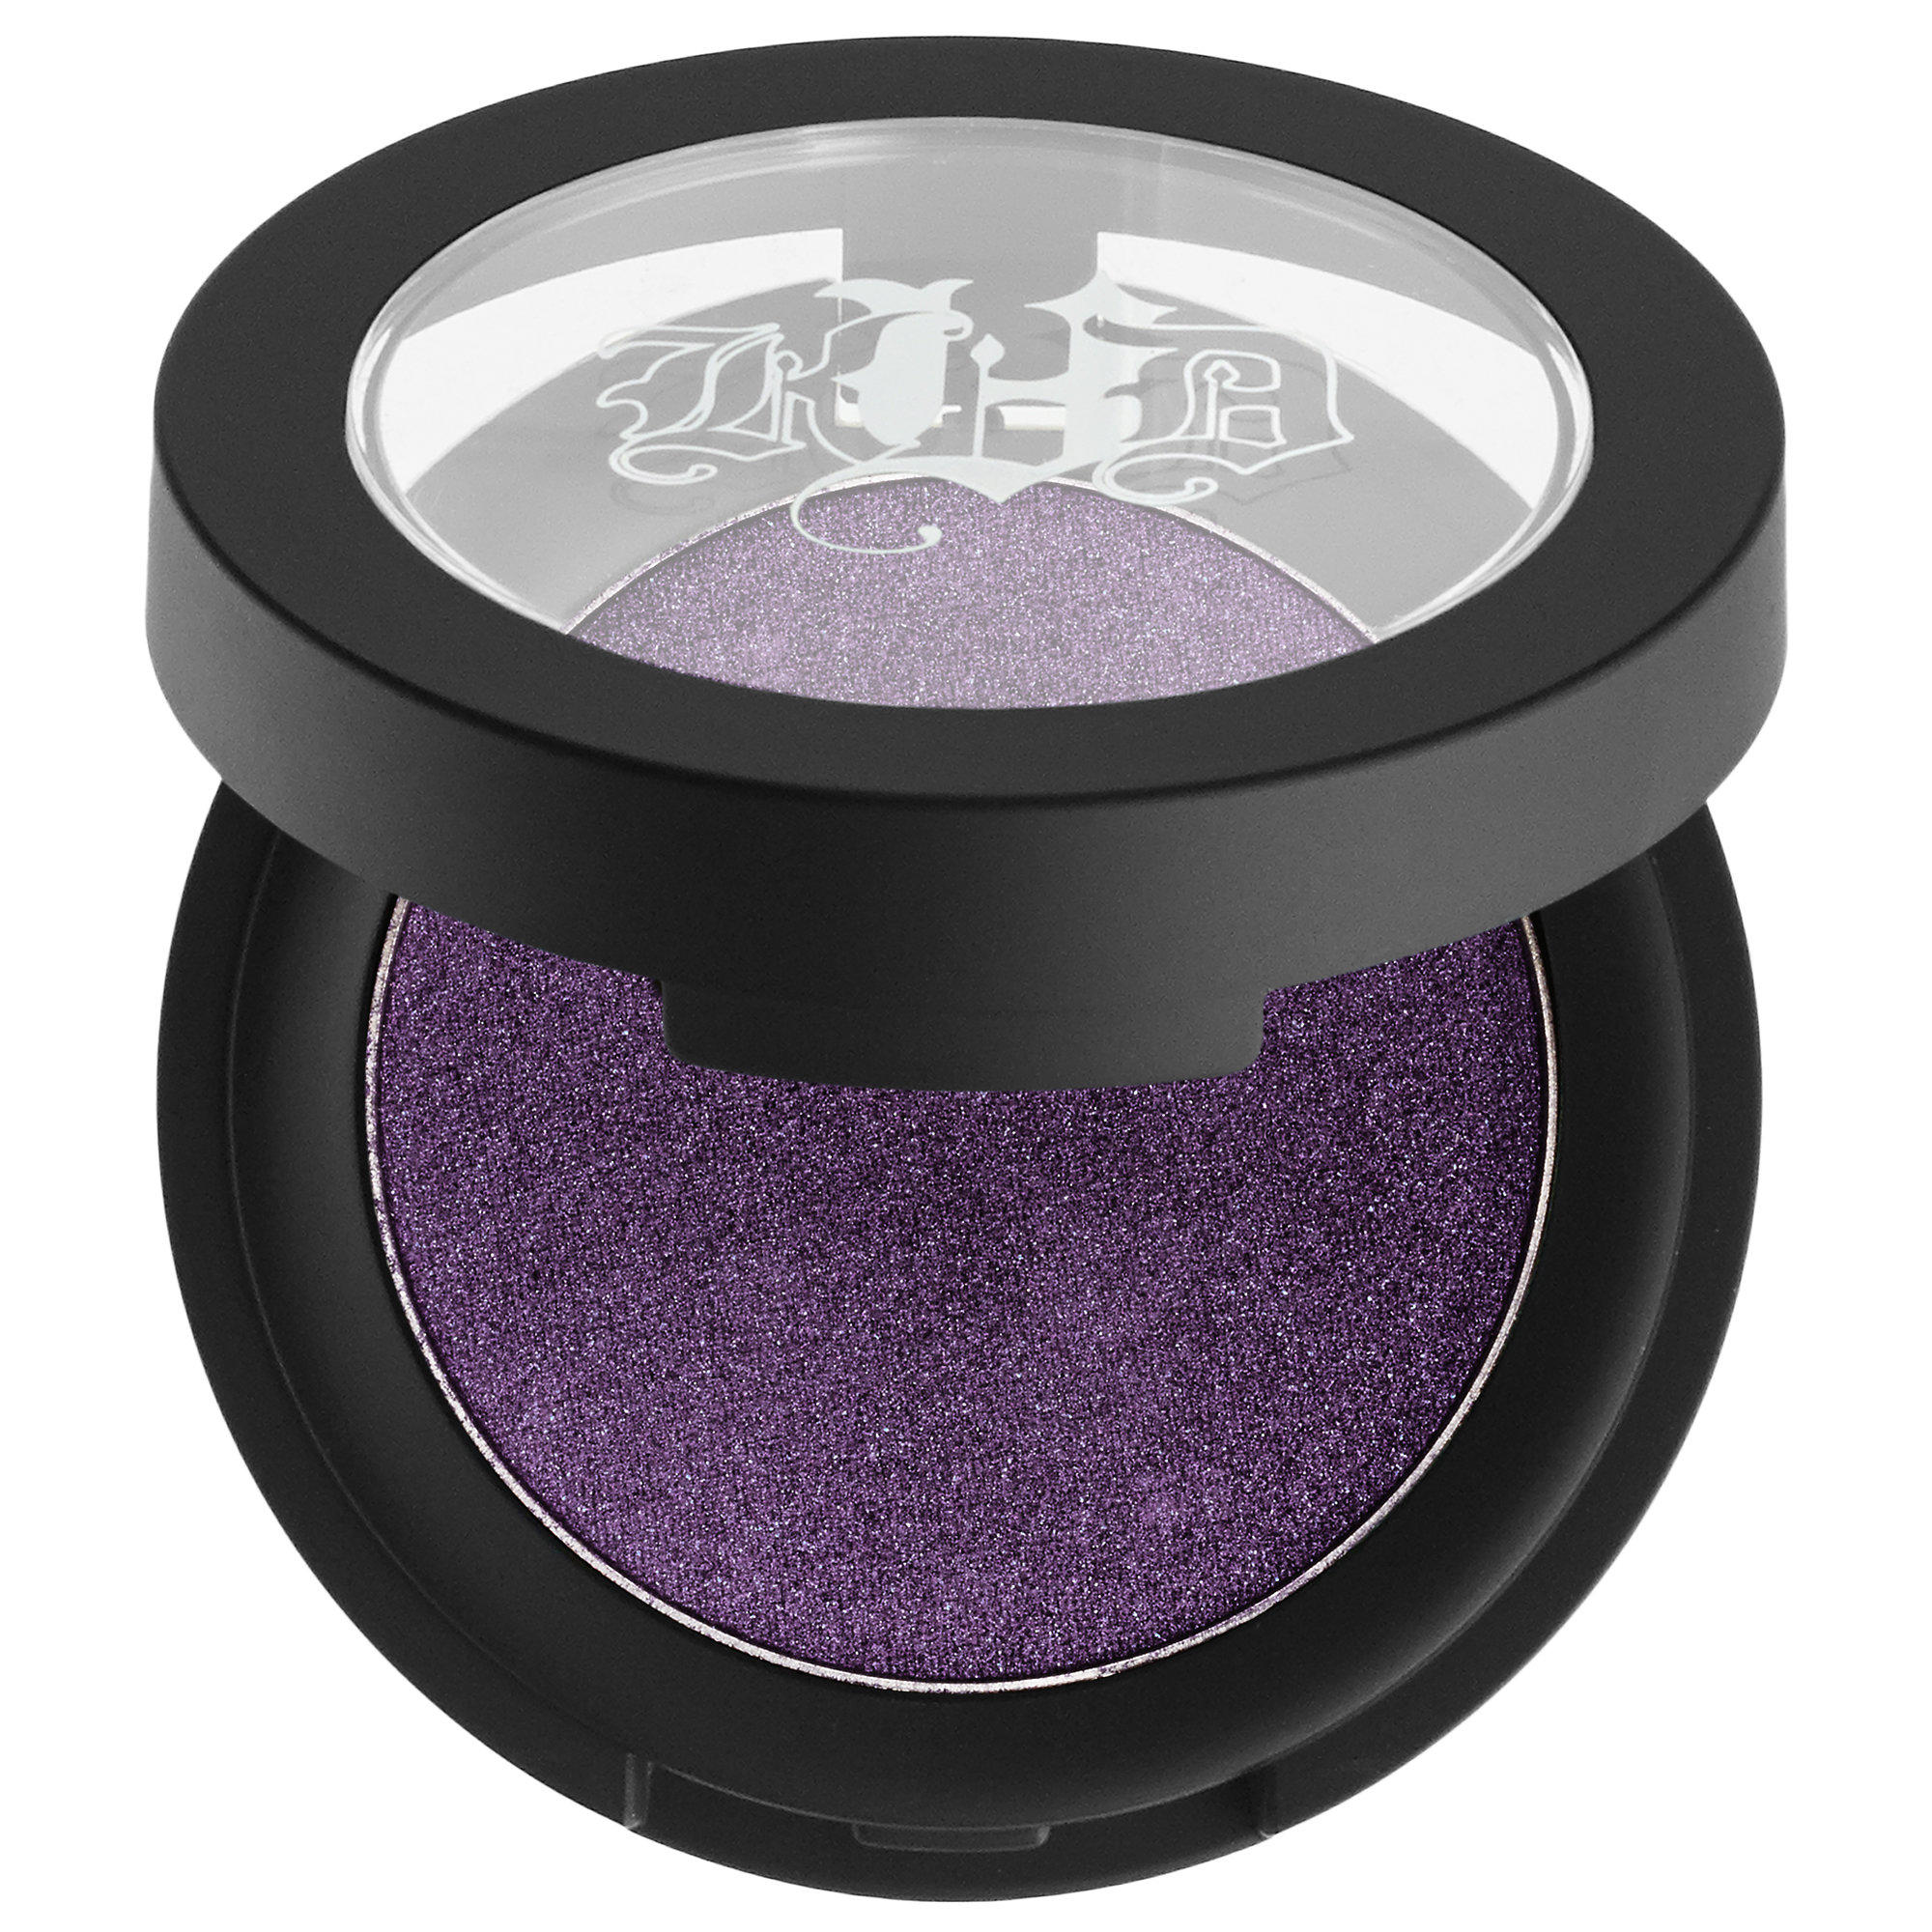 Kat Von D Metal Crush Eyeshadow Danzig